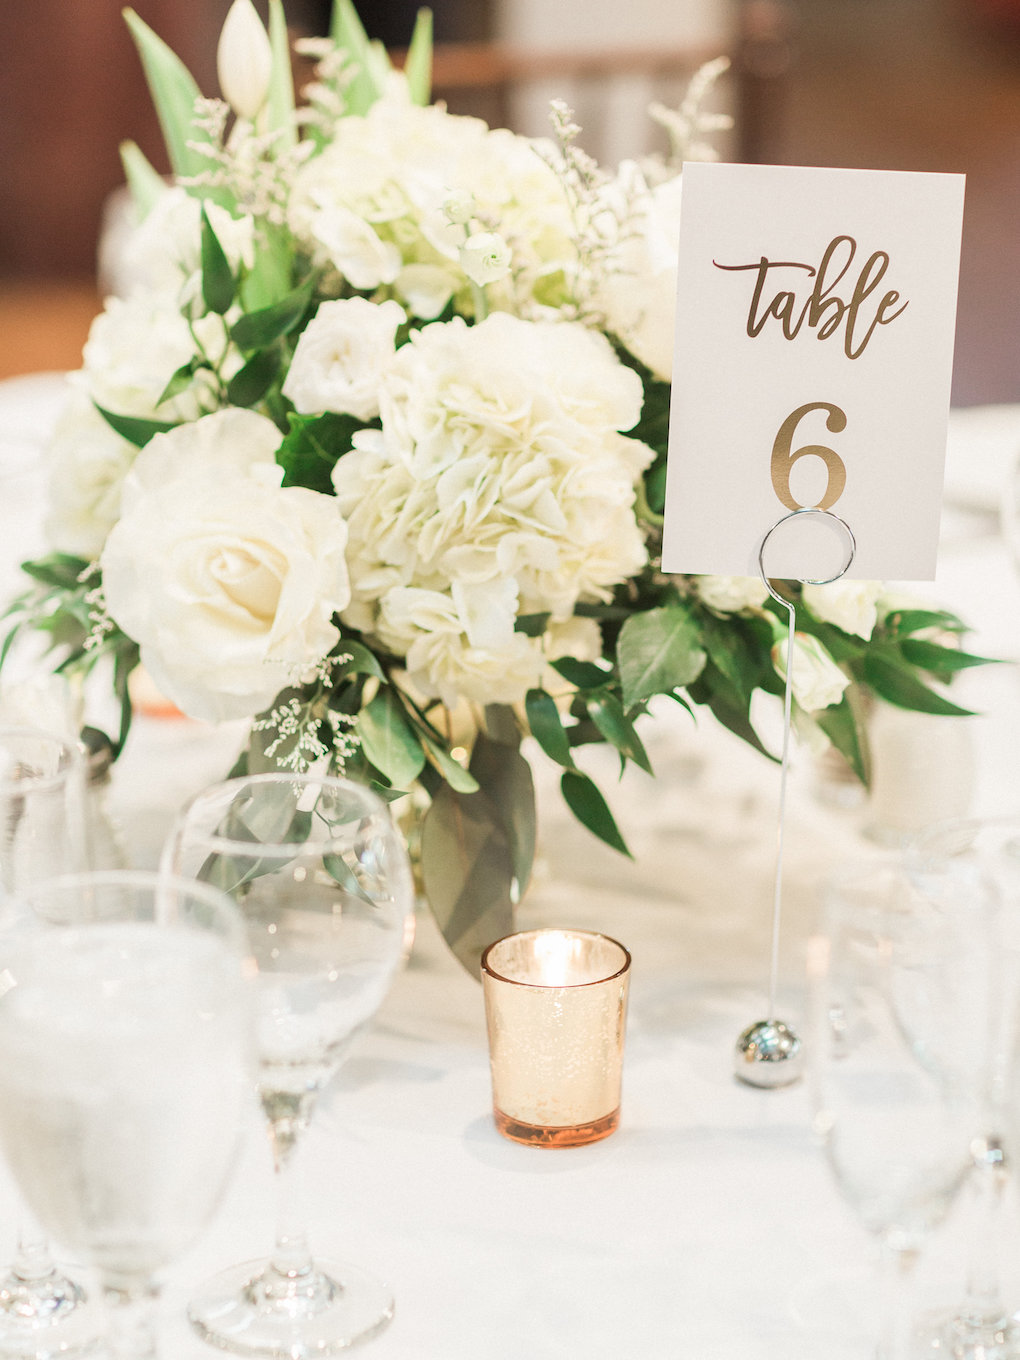 White and greenery wedding centerpieces for chic wedding in Buffalo, NY planned by Exhale Events. Find more timeless wedding inspiration at exhale-events.com!